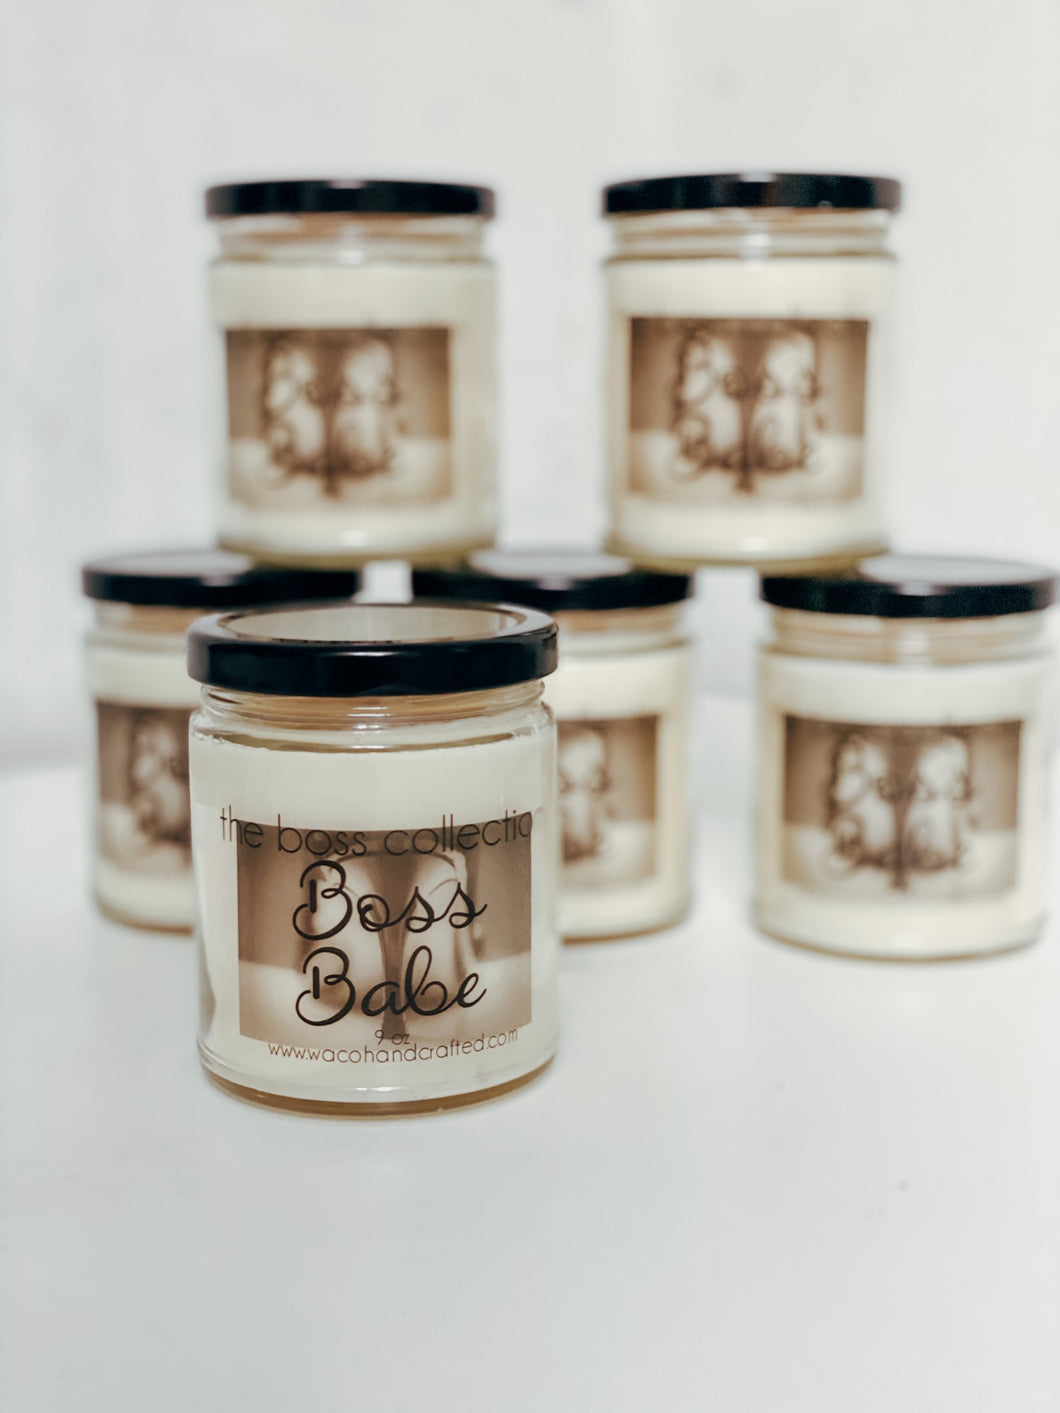 Boss Babe 9 oz Scented Candle - Waco Handcrafted